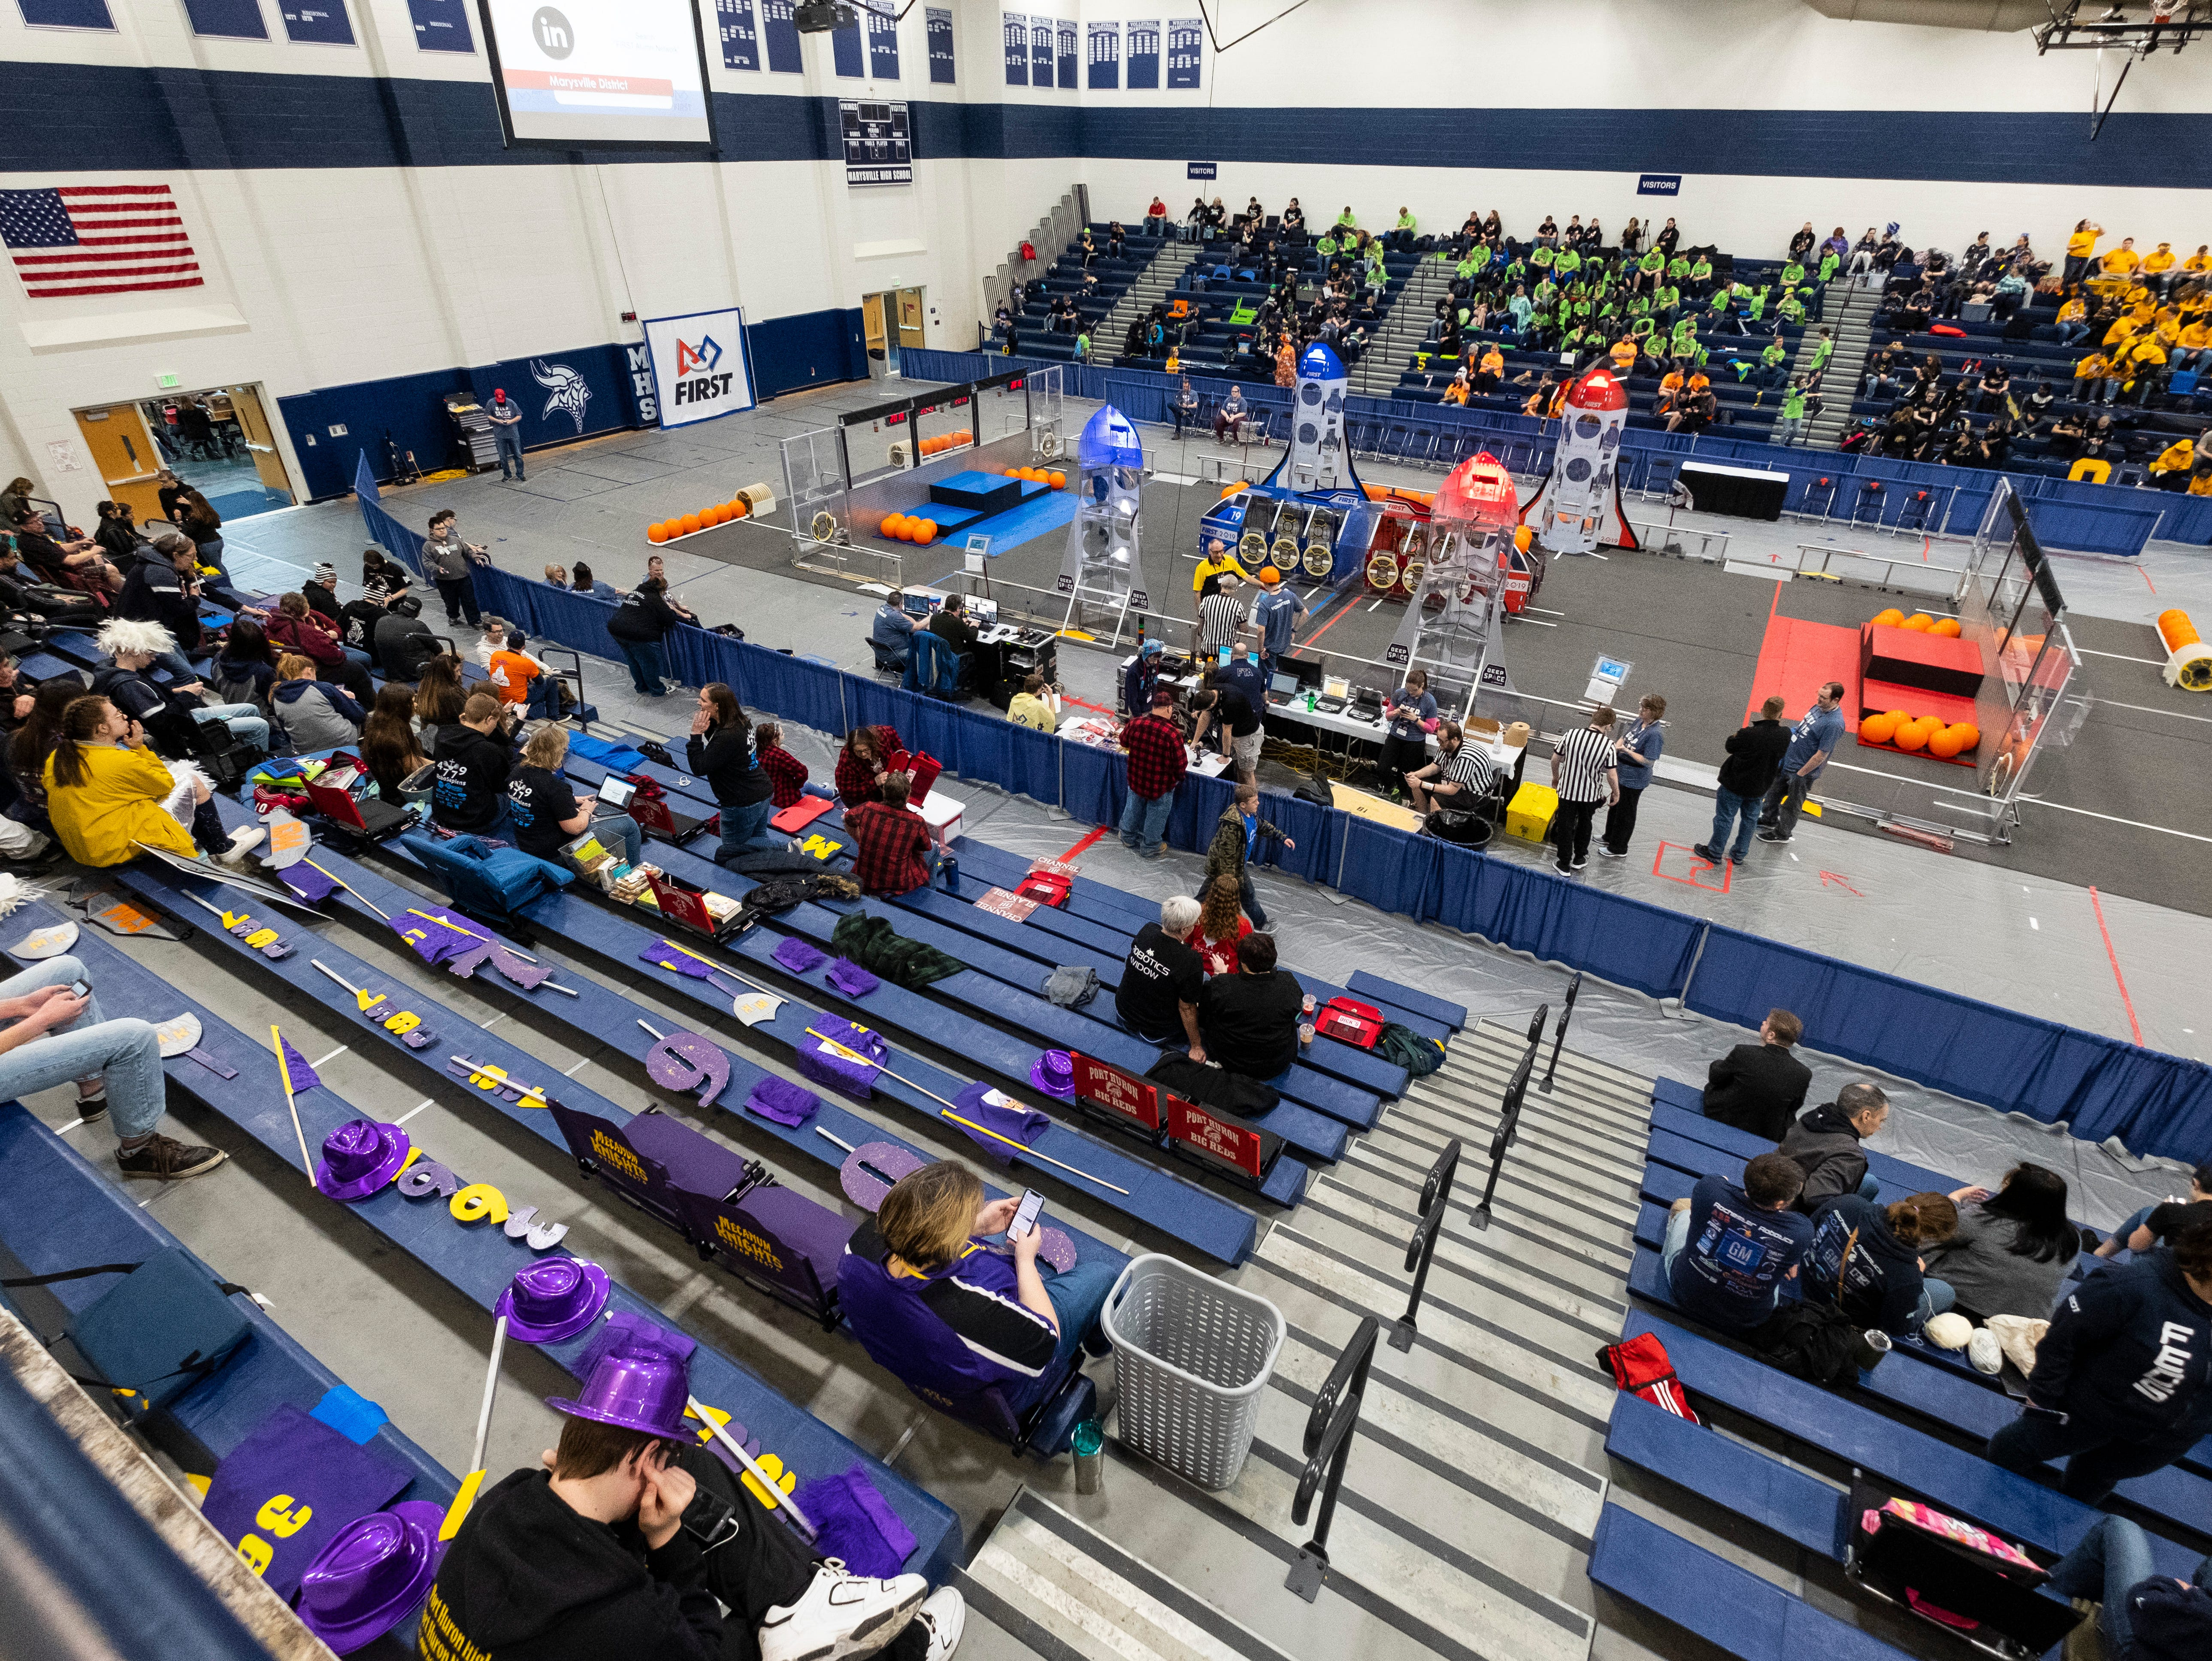 Spectators begin to fill the gymnasium at Marysville High School before the FIRST Robotics district event Friday, March 29, 2019.